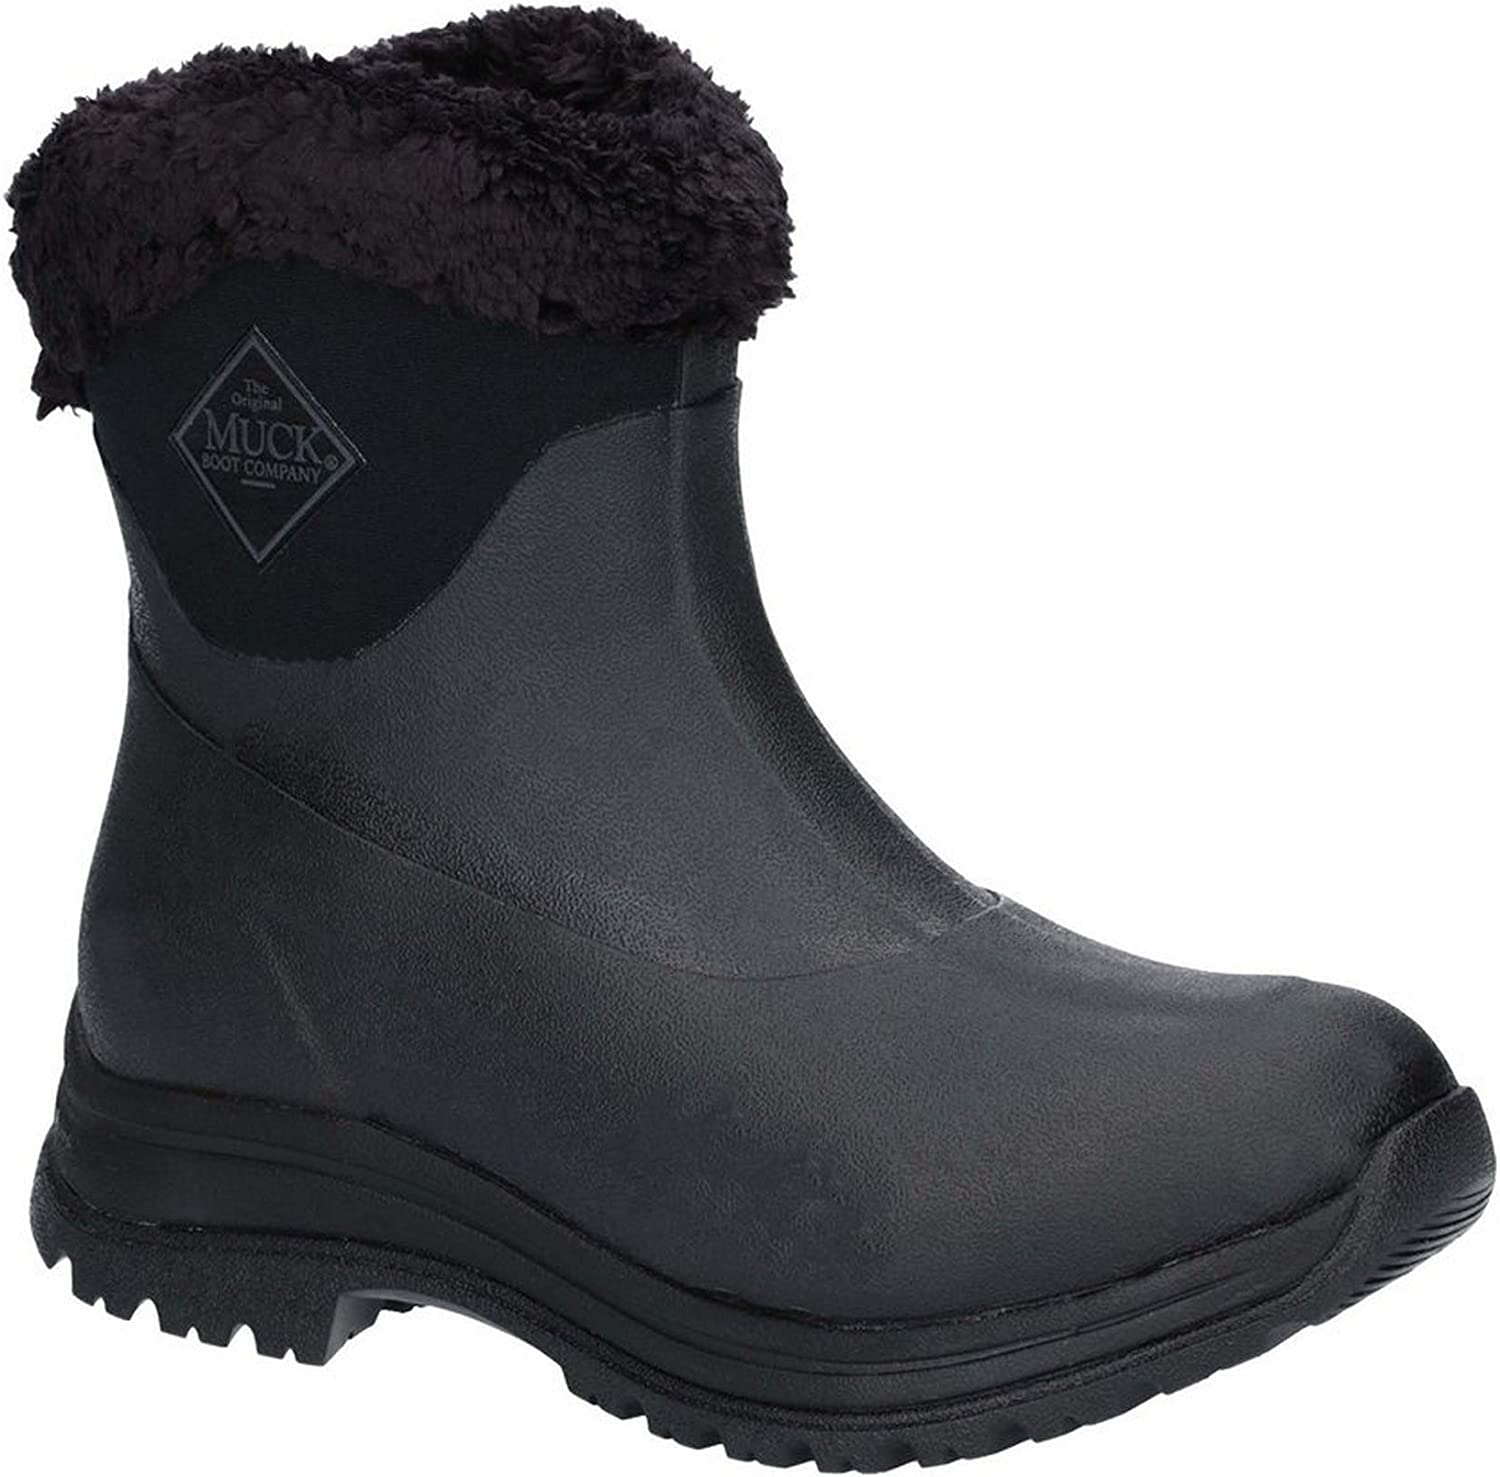 Muck Boots Unisex Arctic Apres Slip On Casual Winter Boots